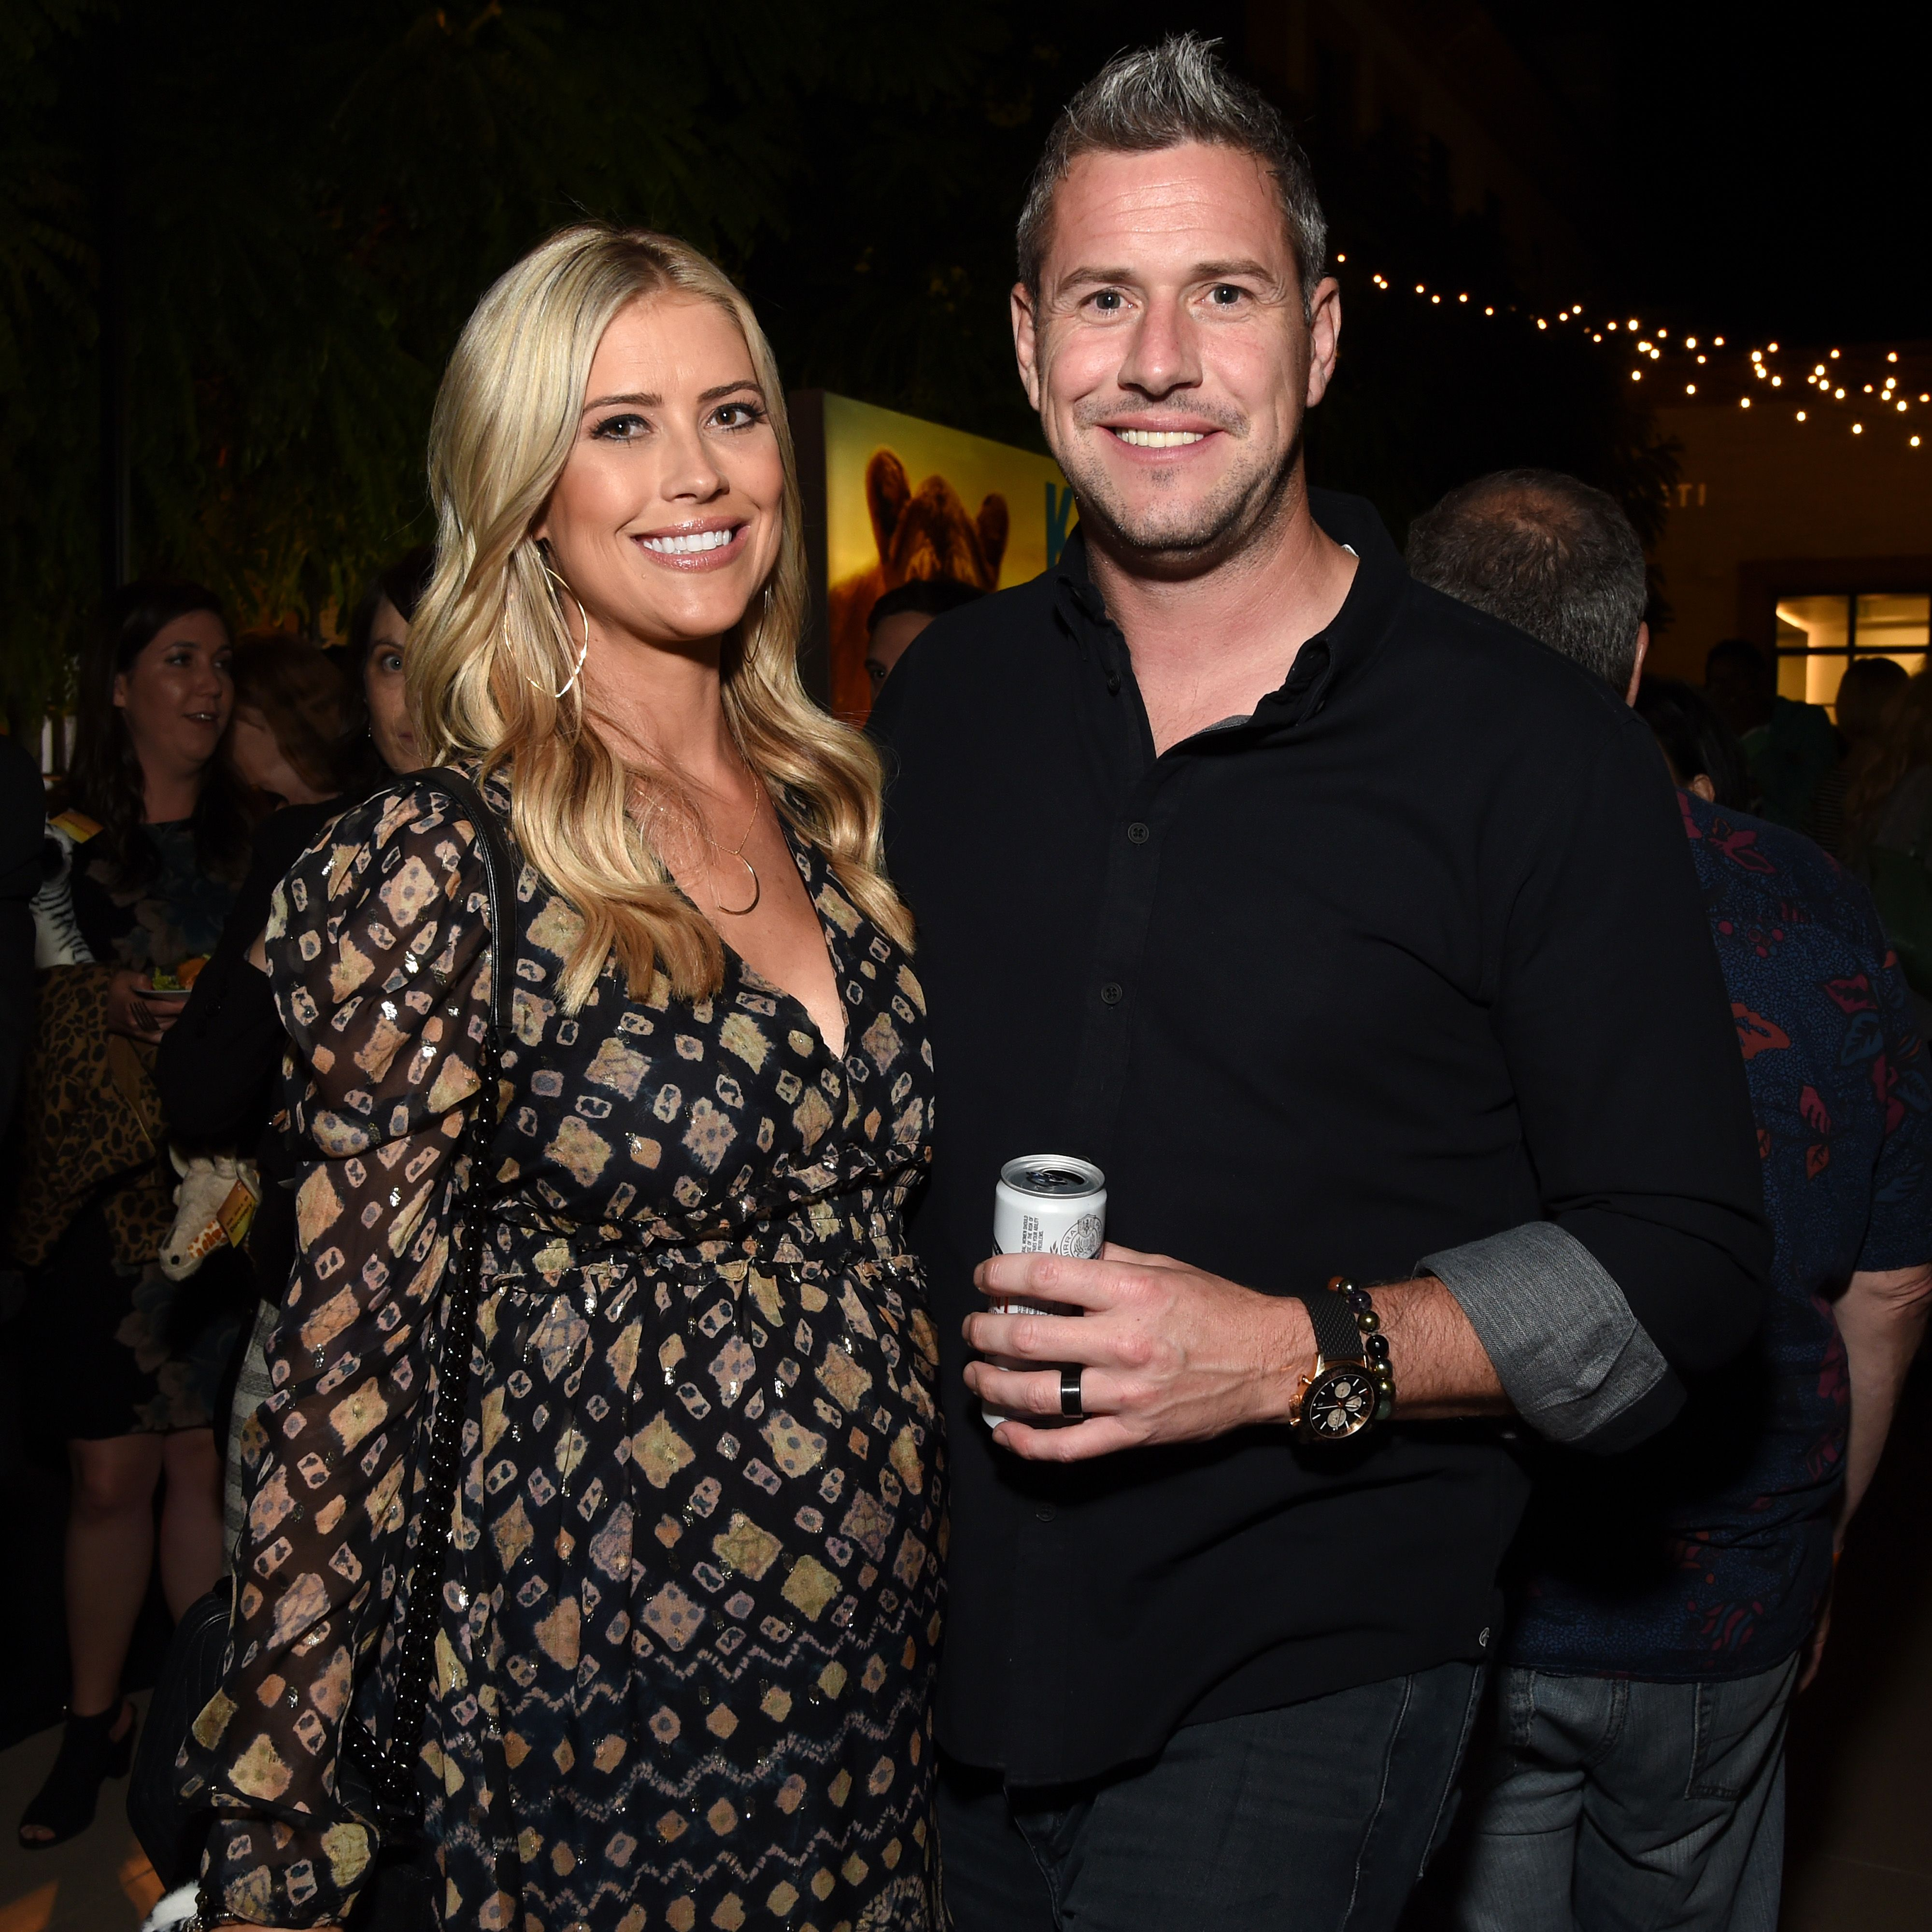 """Christina Anstead and Ant Anstead at Discovery's """"Serengeti"""" premiere at Wallis Annenberg Center for the Performing Arts on July 23, 2019 